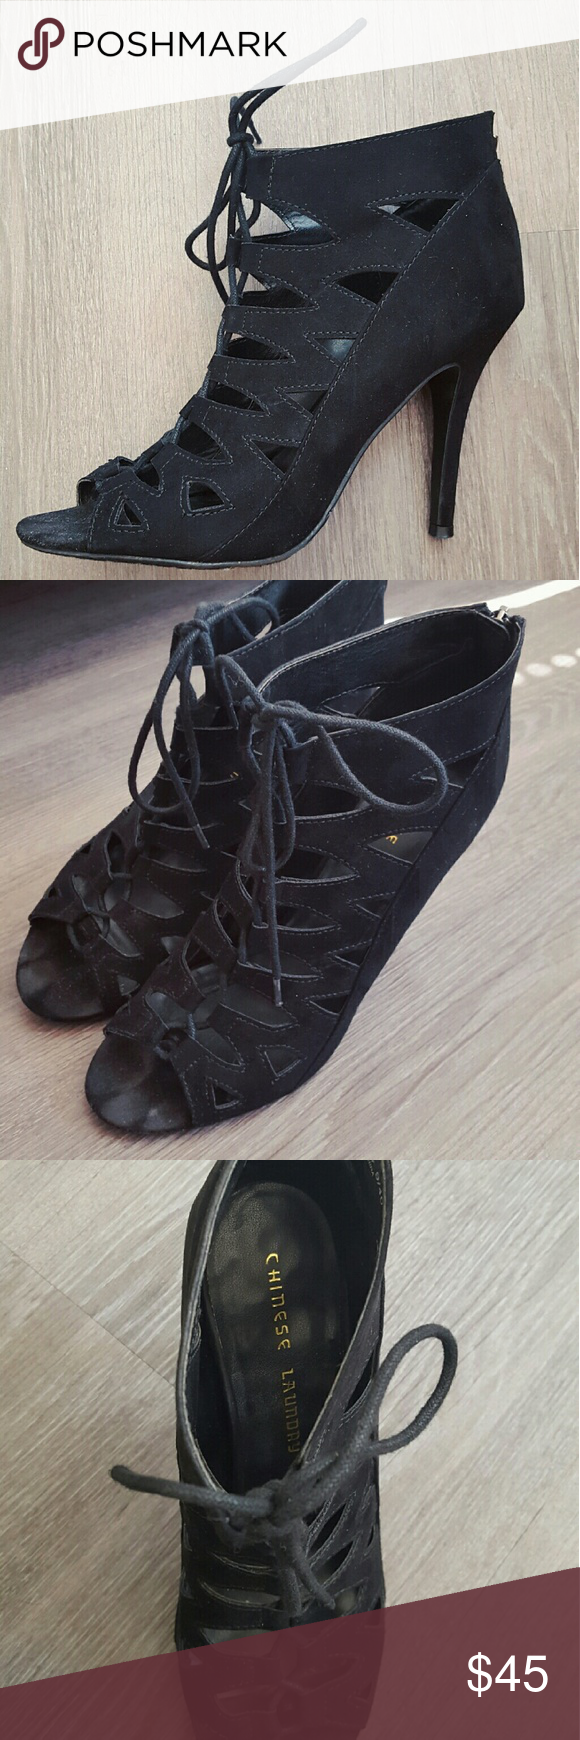 CHINESE LAUNDRY BLACK HEELS Sexy and super comfortable (really) black lace up heels, featuring black suede, peep toe, and back zipper. Good condition all around and fits true to size. Chinese Laundry Shoes Heels